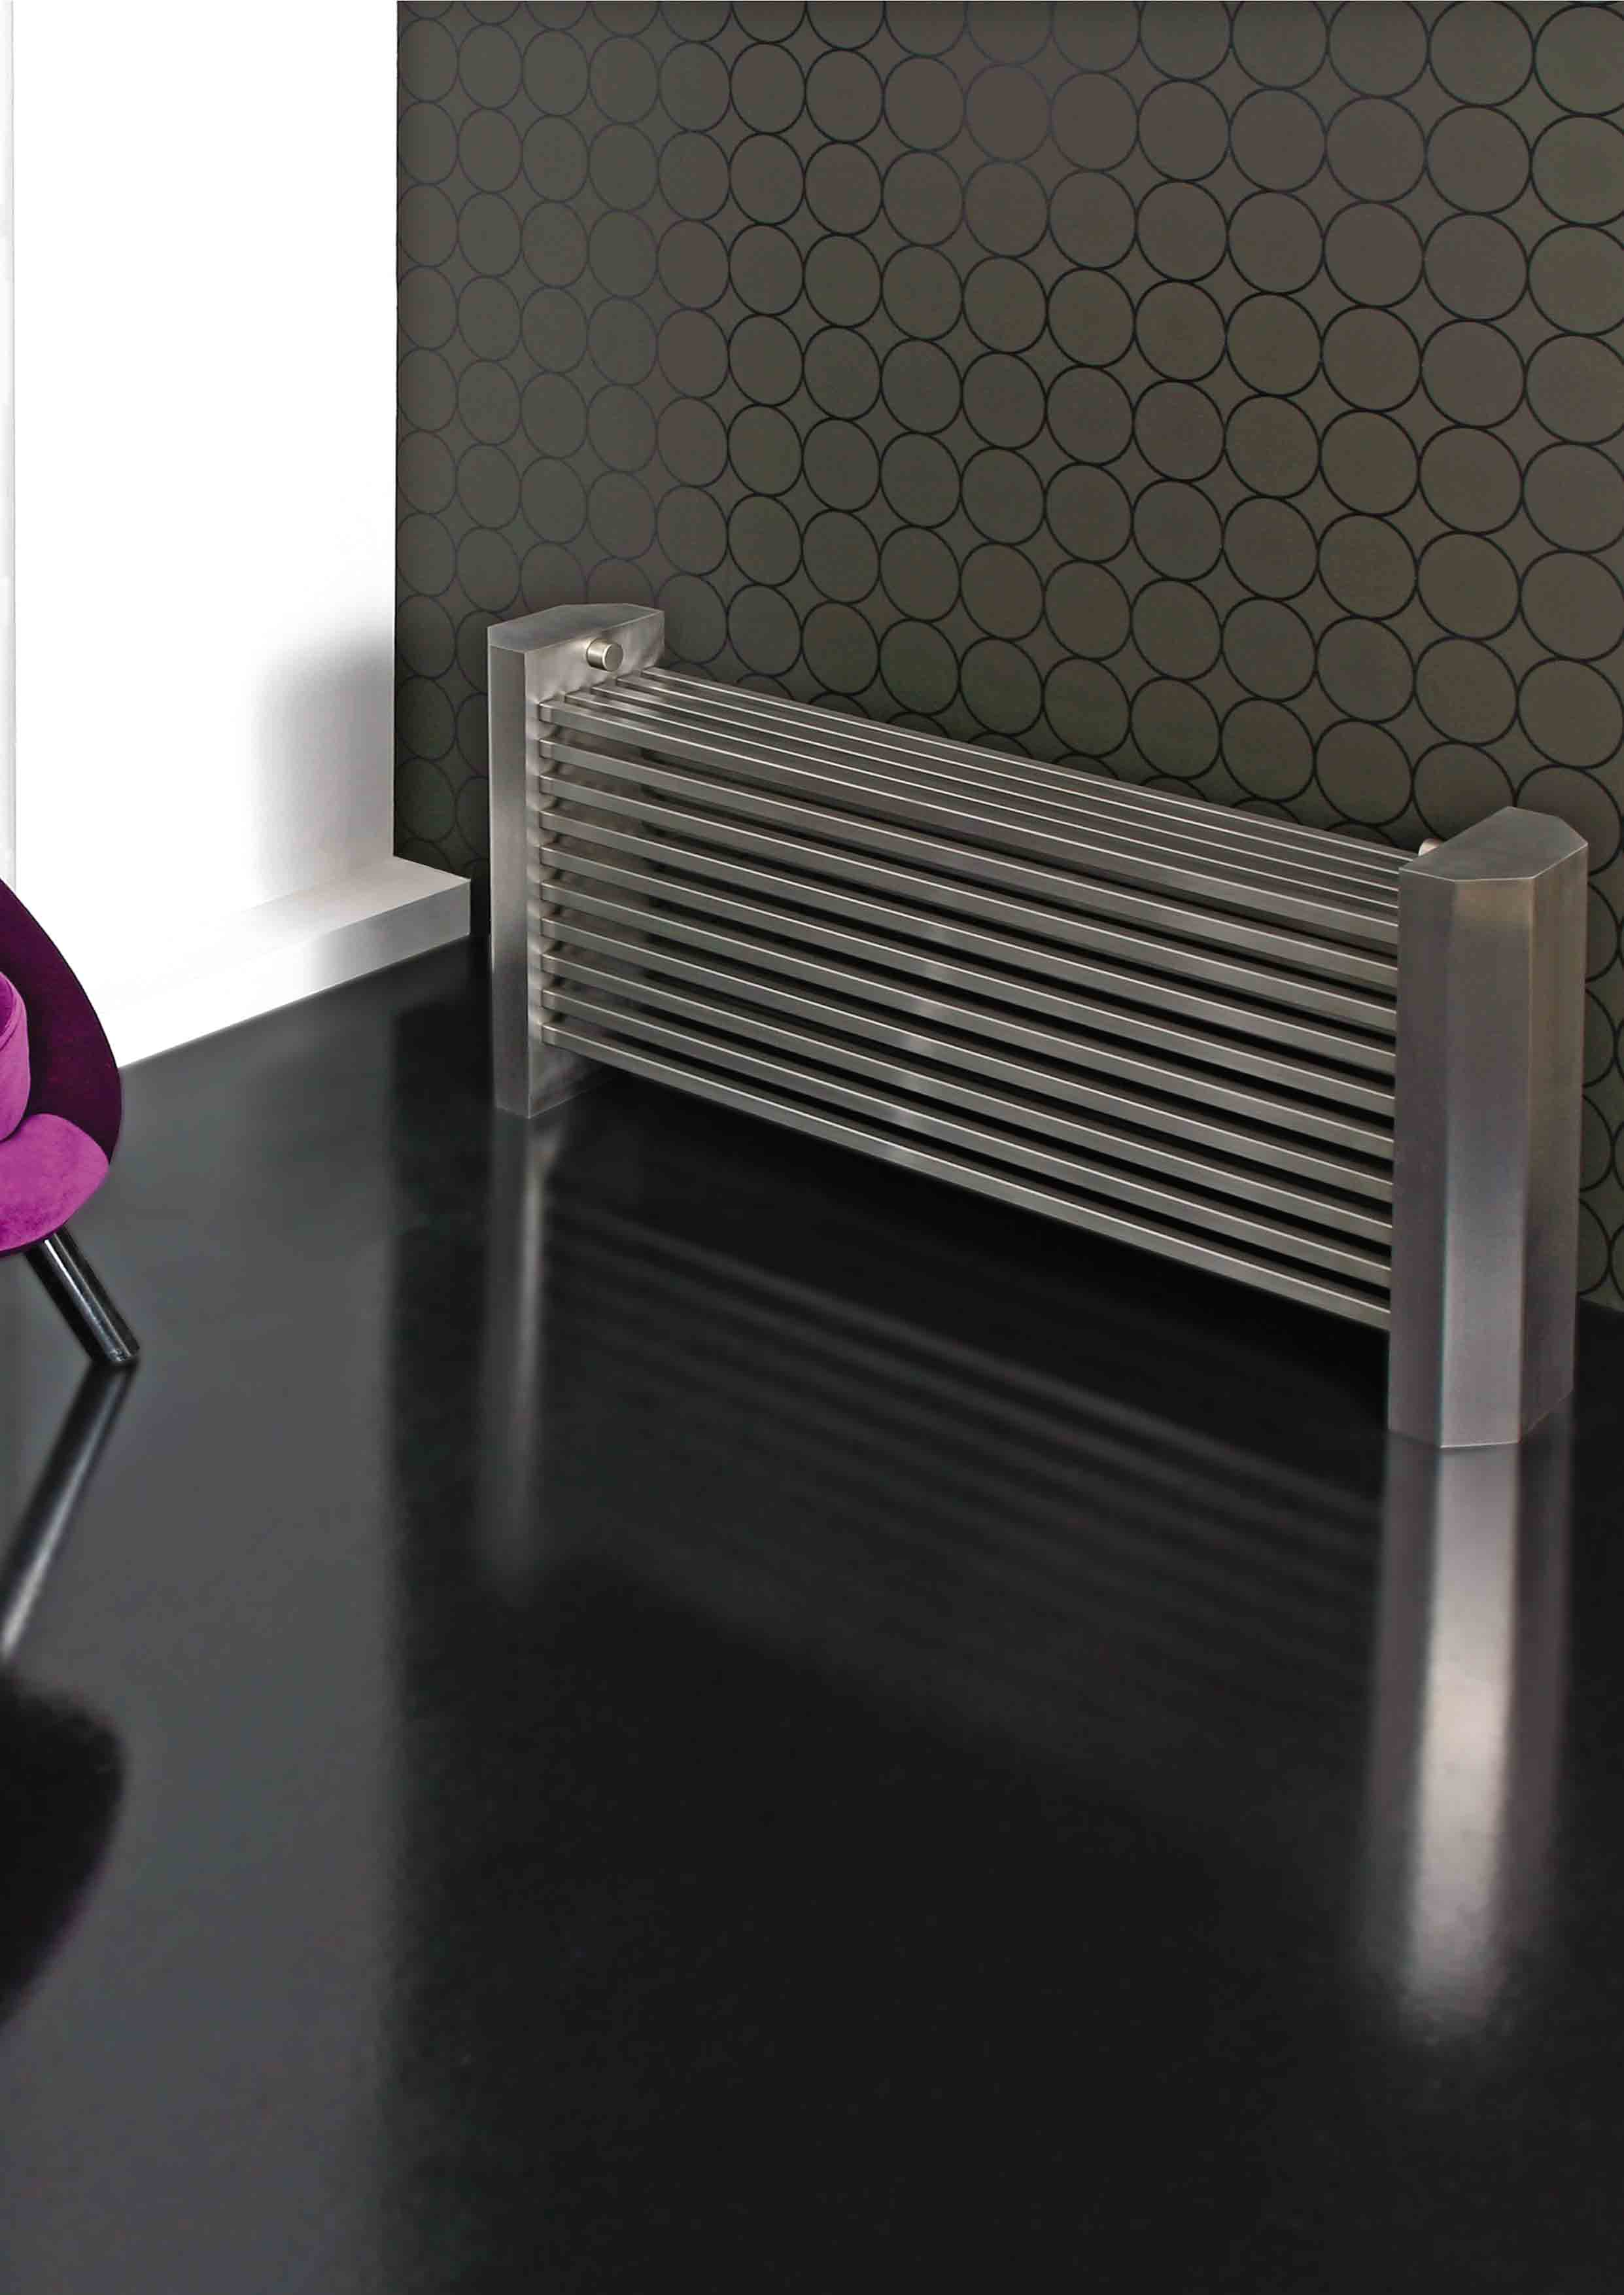 april radiateur inox bross p1094. Black Bedroom Furniture Sets. Home Design Ideas